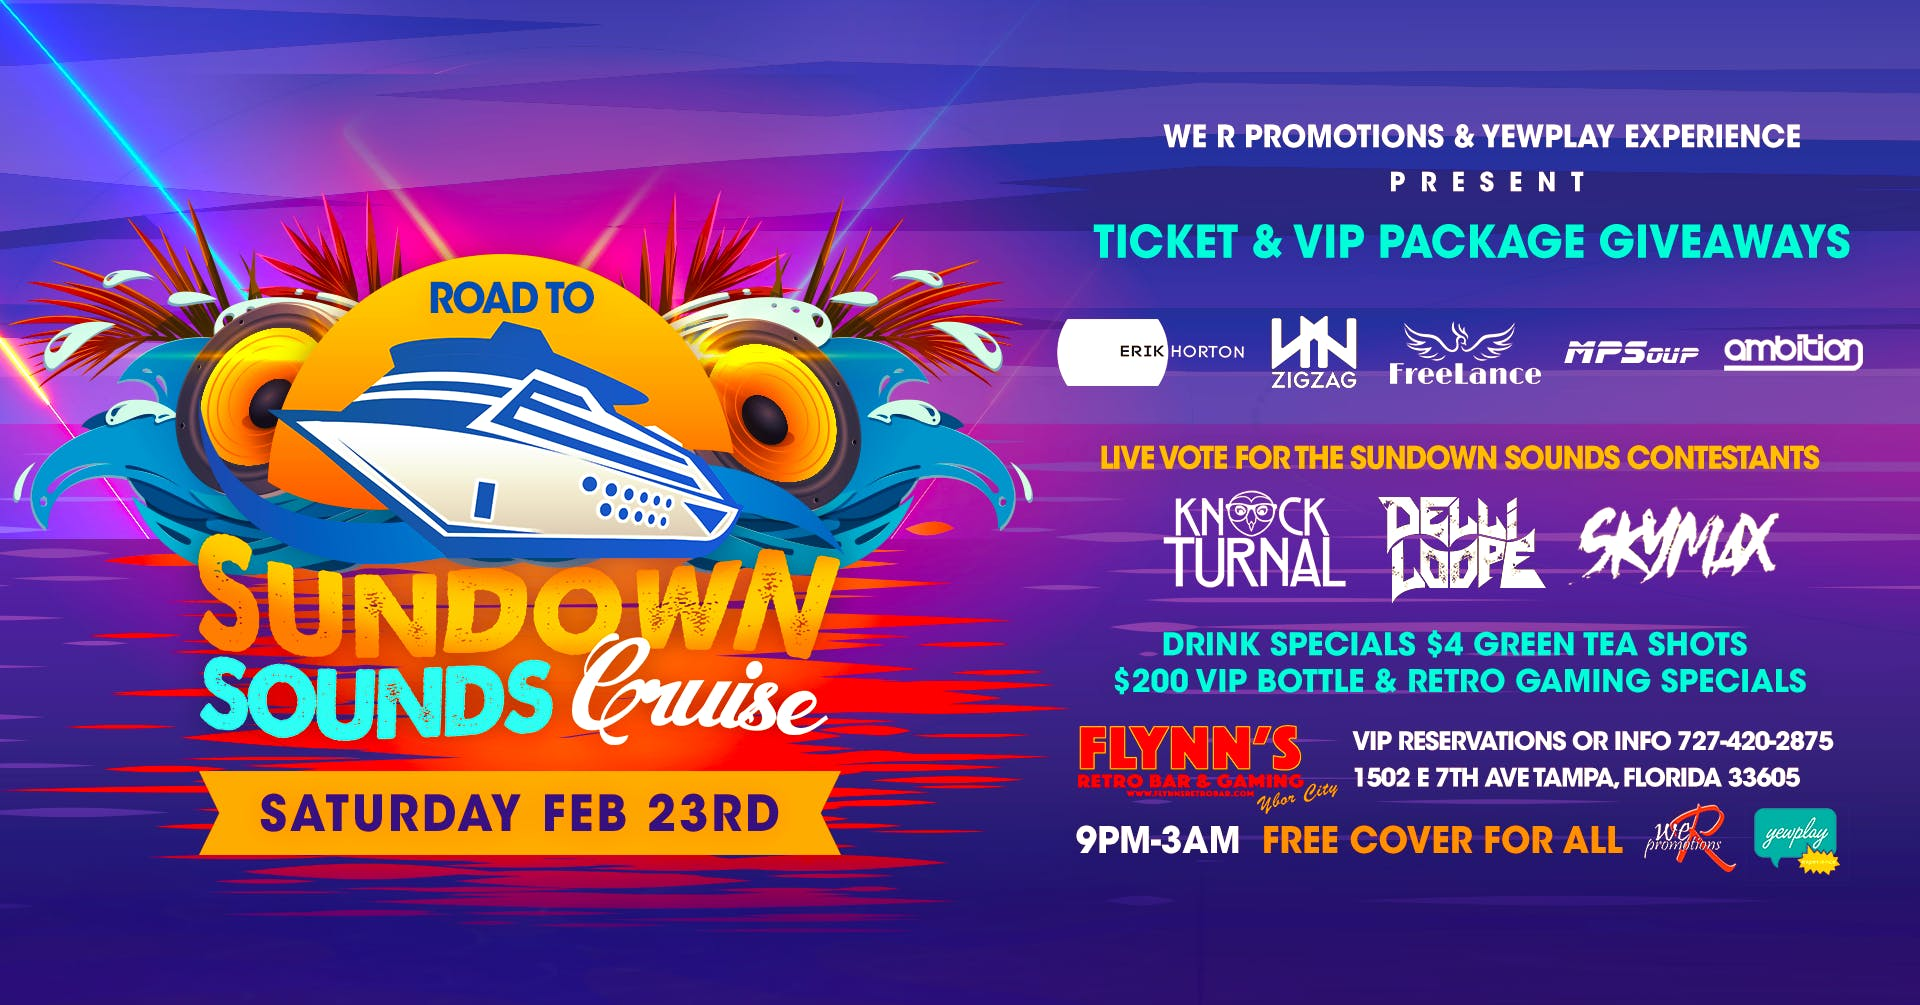 Road to Sundown sounds cruise FREE event with